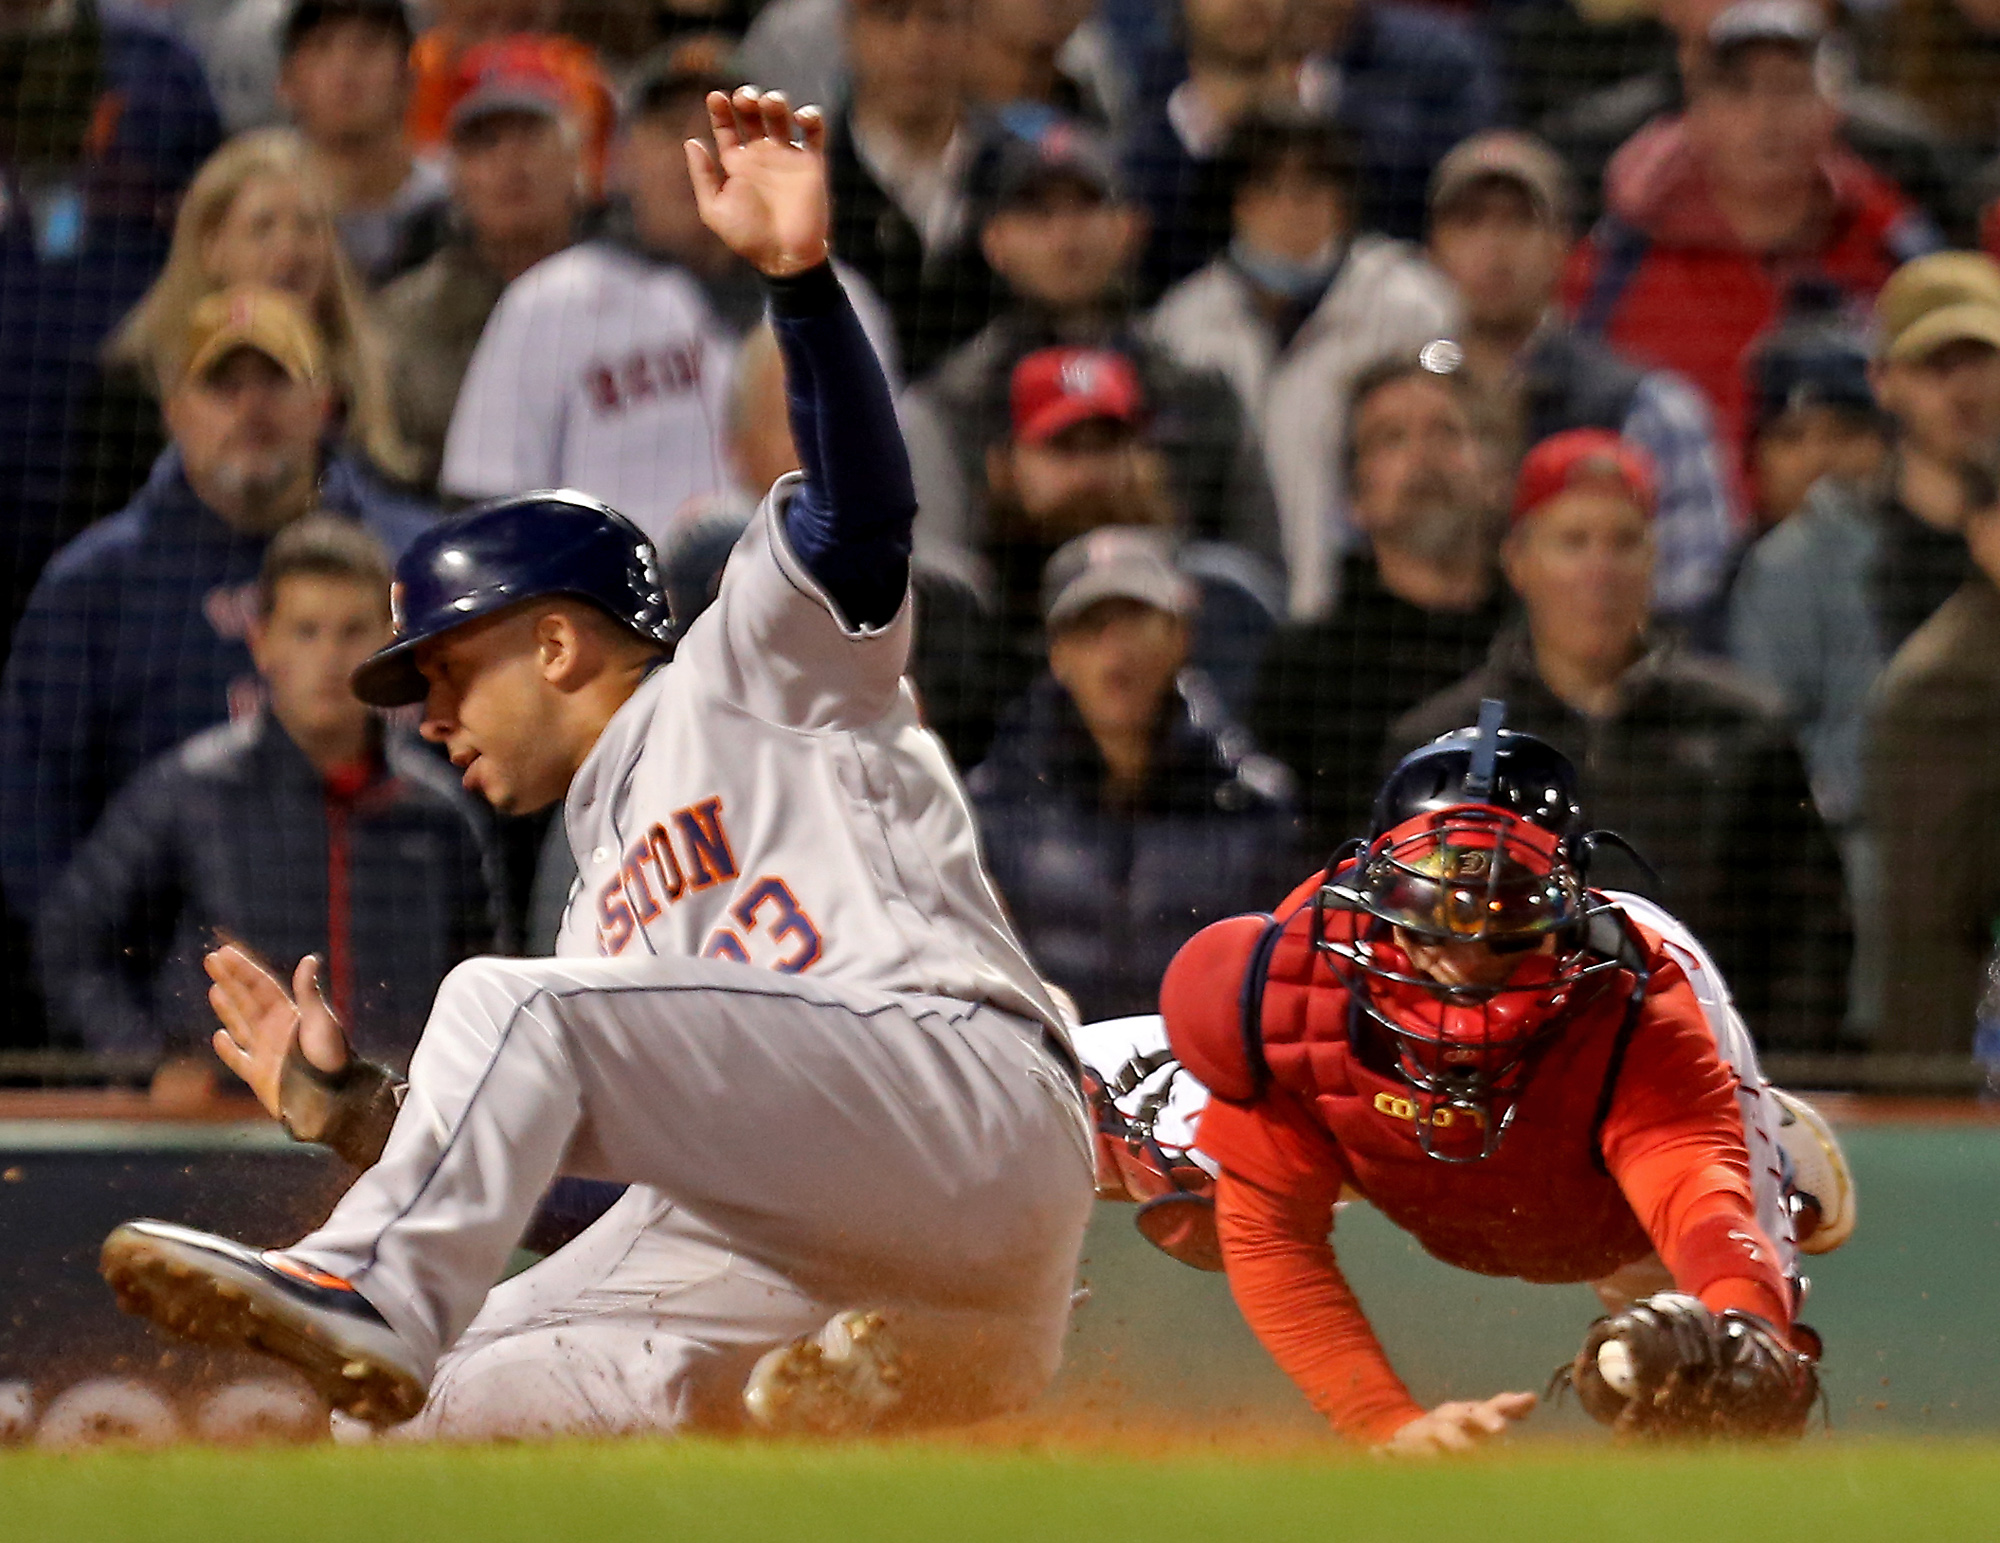 Red Sox vs Astros game 4 ALCS